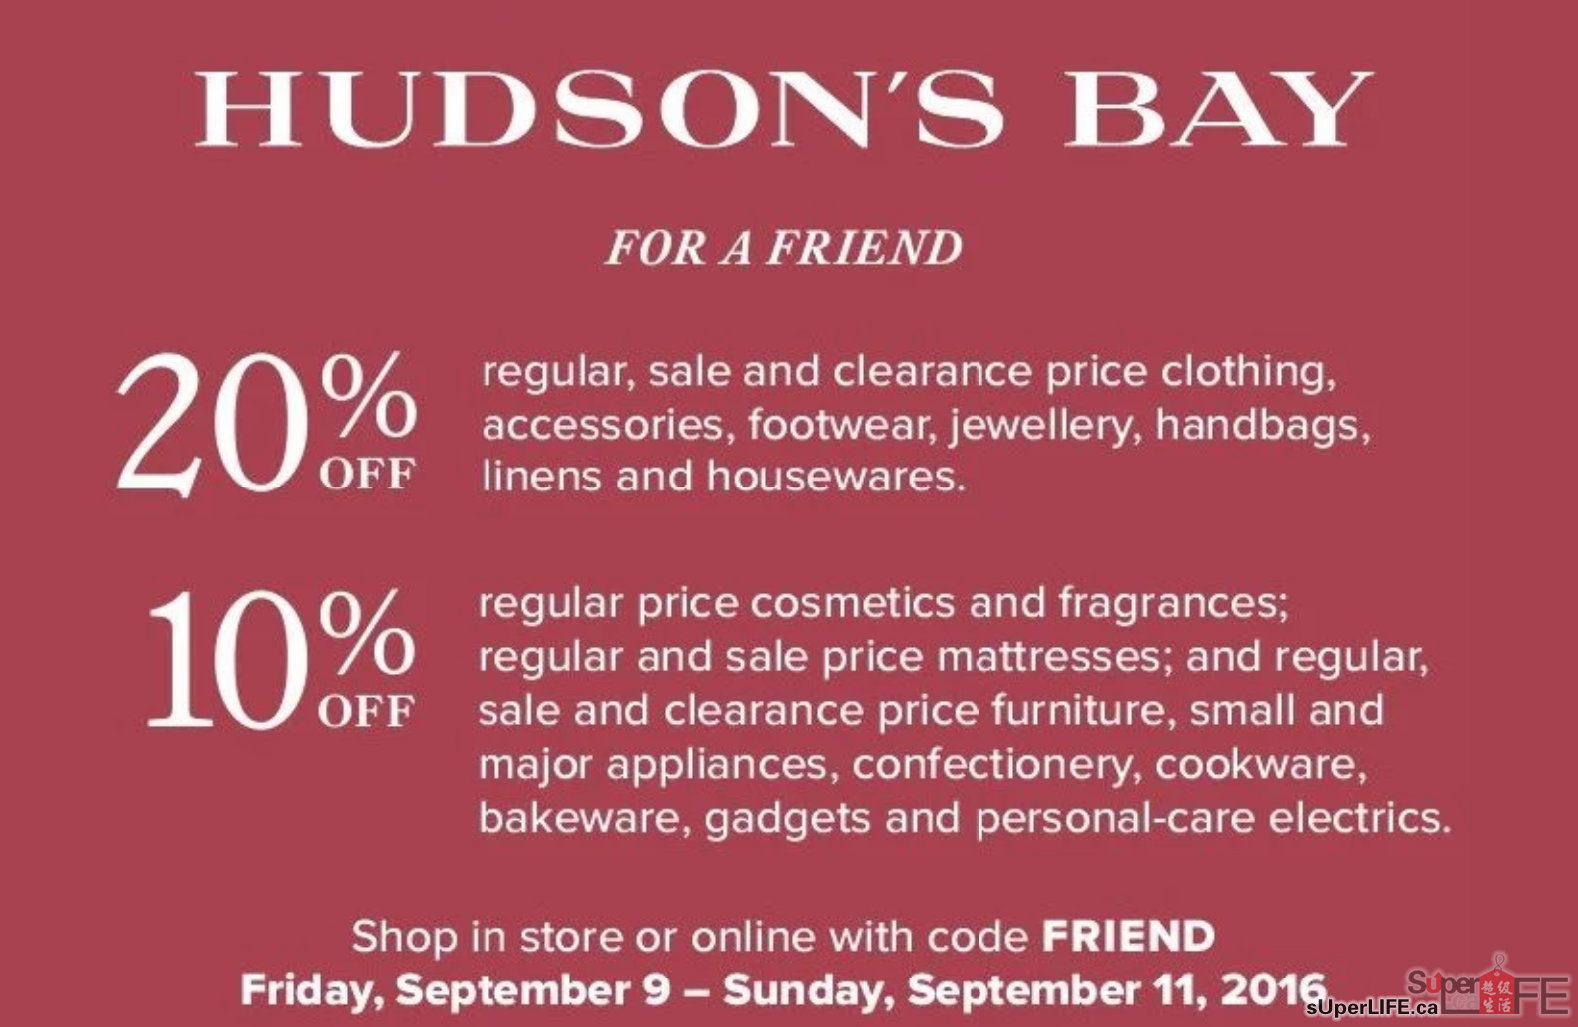 Extra $25 Off$+ with Your Hudson's Bay Mastercard or Credit Card Shop online at bestdfil3sl.ga and get best discounts. Enter the code at checkout and get Extra $25 Off$+ with Your Hudson's Bay Mastercard or Credit Card. Code valid until: Saturday, 14 Aug